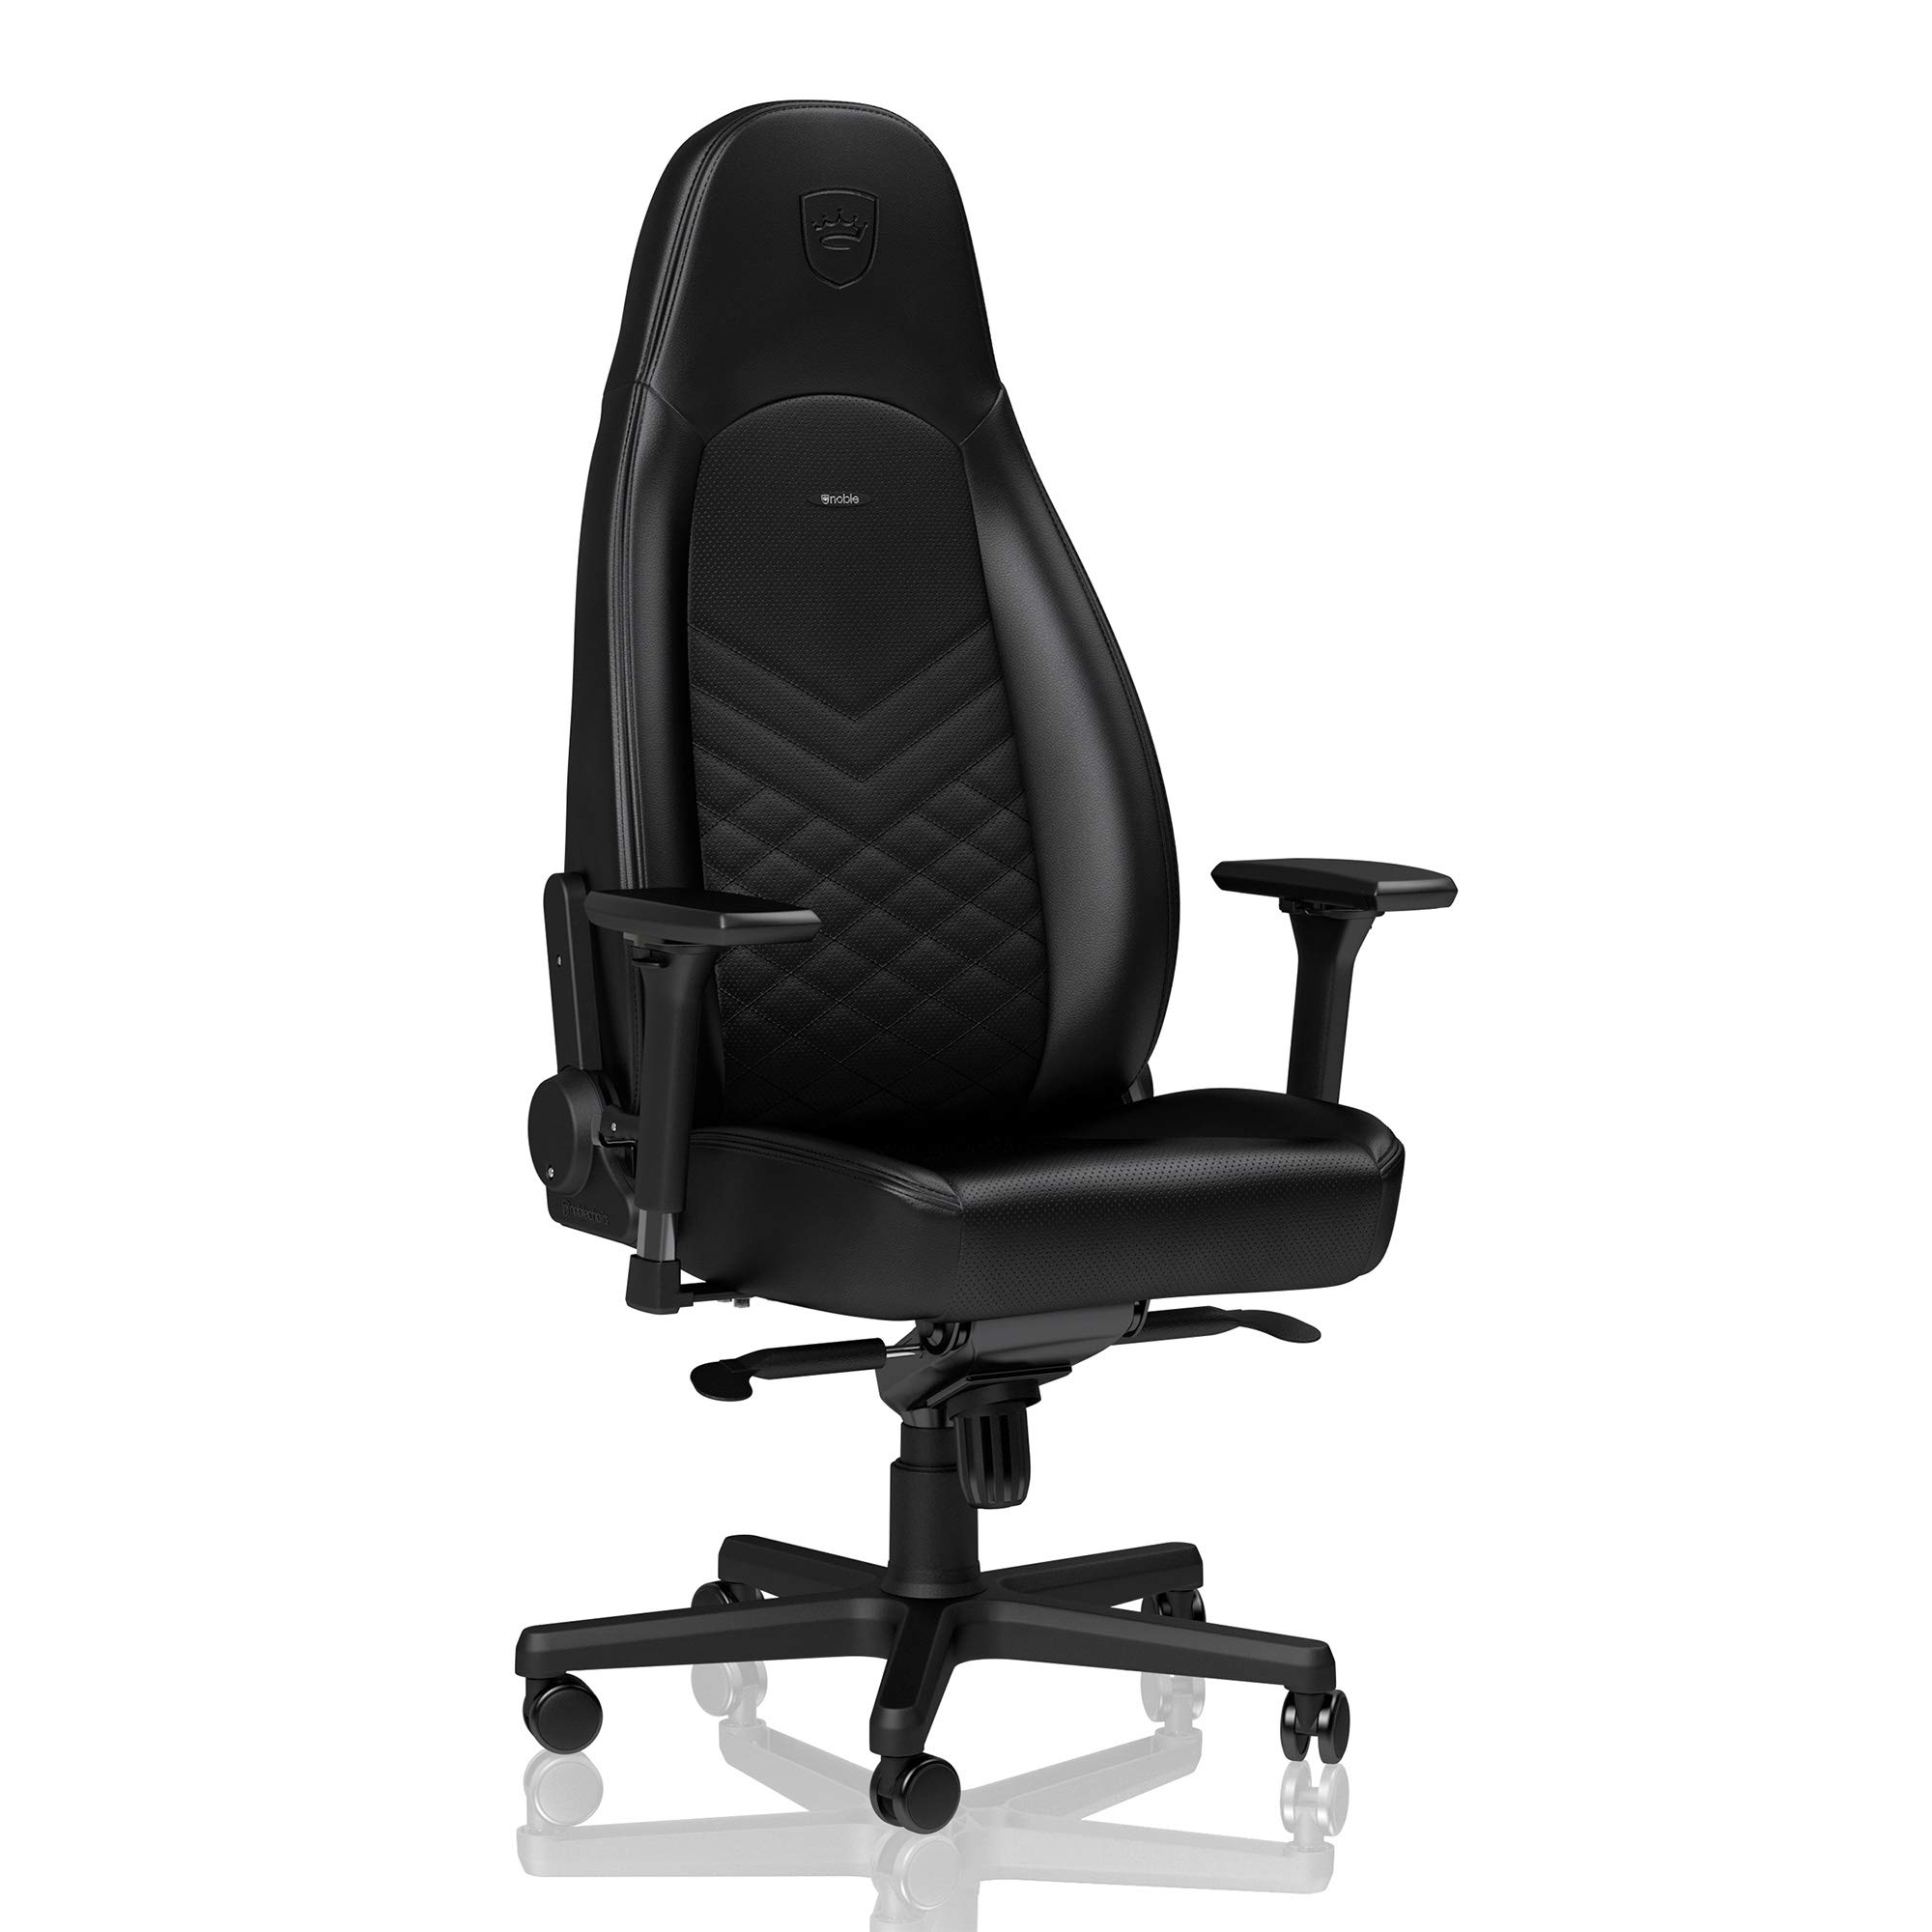 noblechairs ICON Gaming Chair - Office Chair - Desk Chair - PU Faux Leather - Ergonomic - Cold Foam Upholstery - 330 lbs - Racing Seat Design - Black by noblechairs